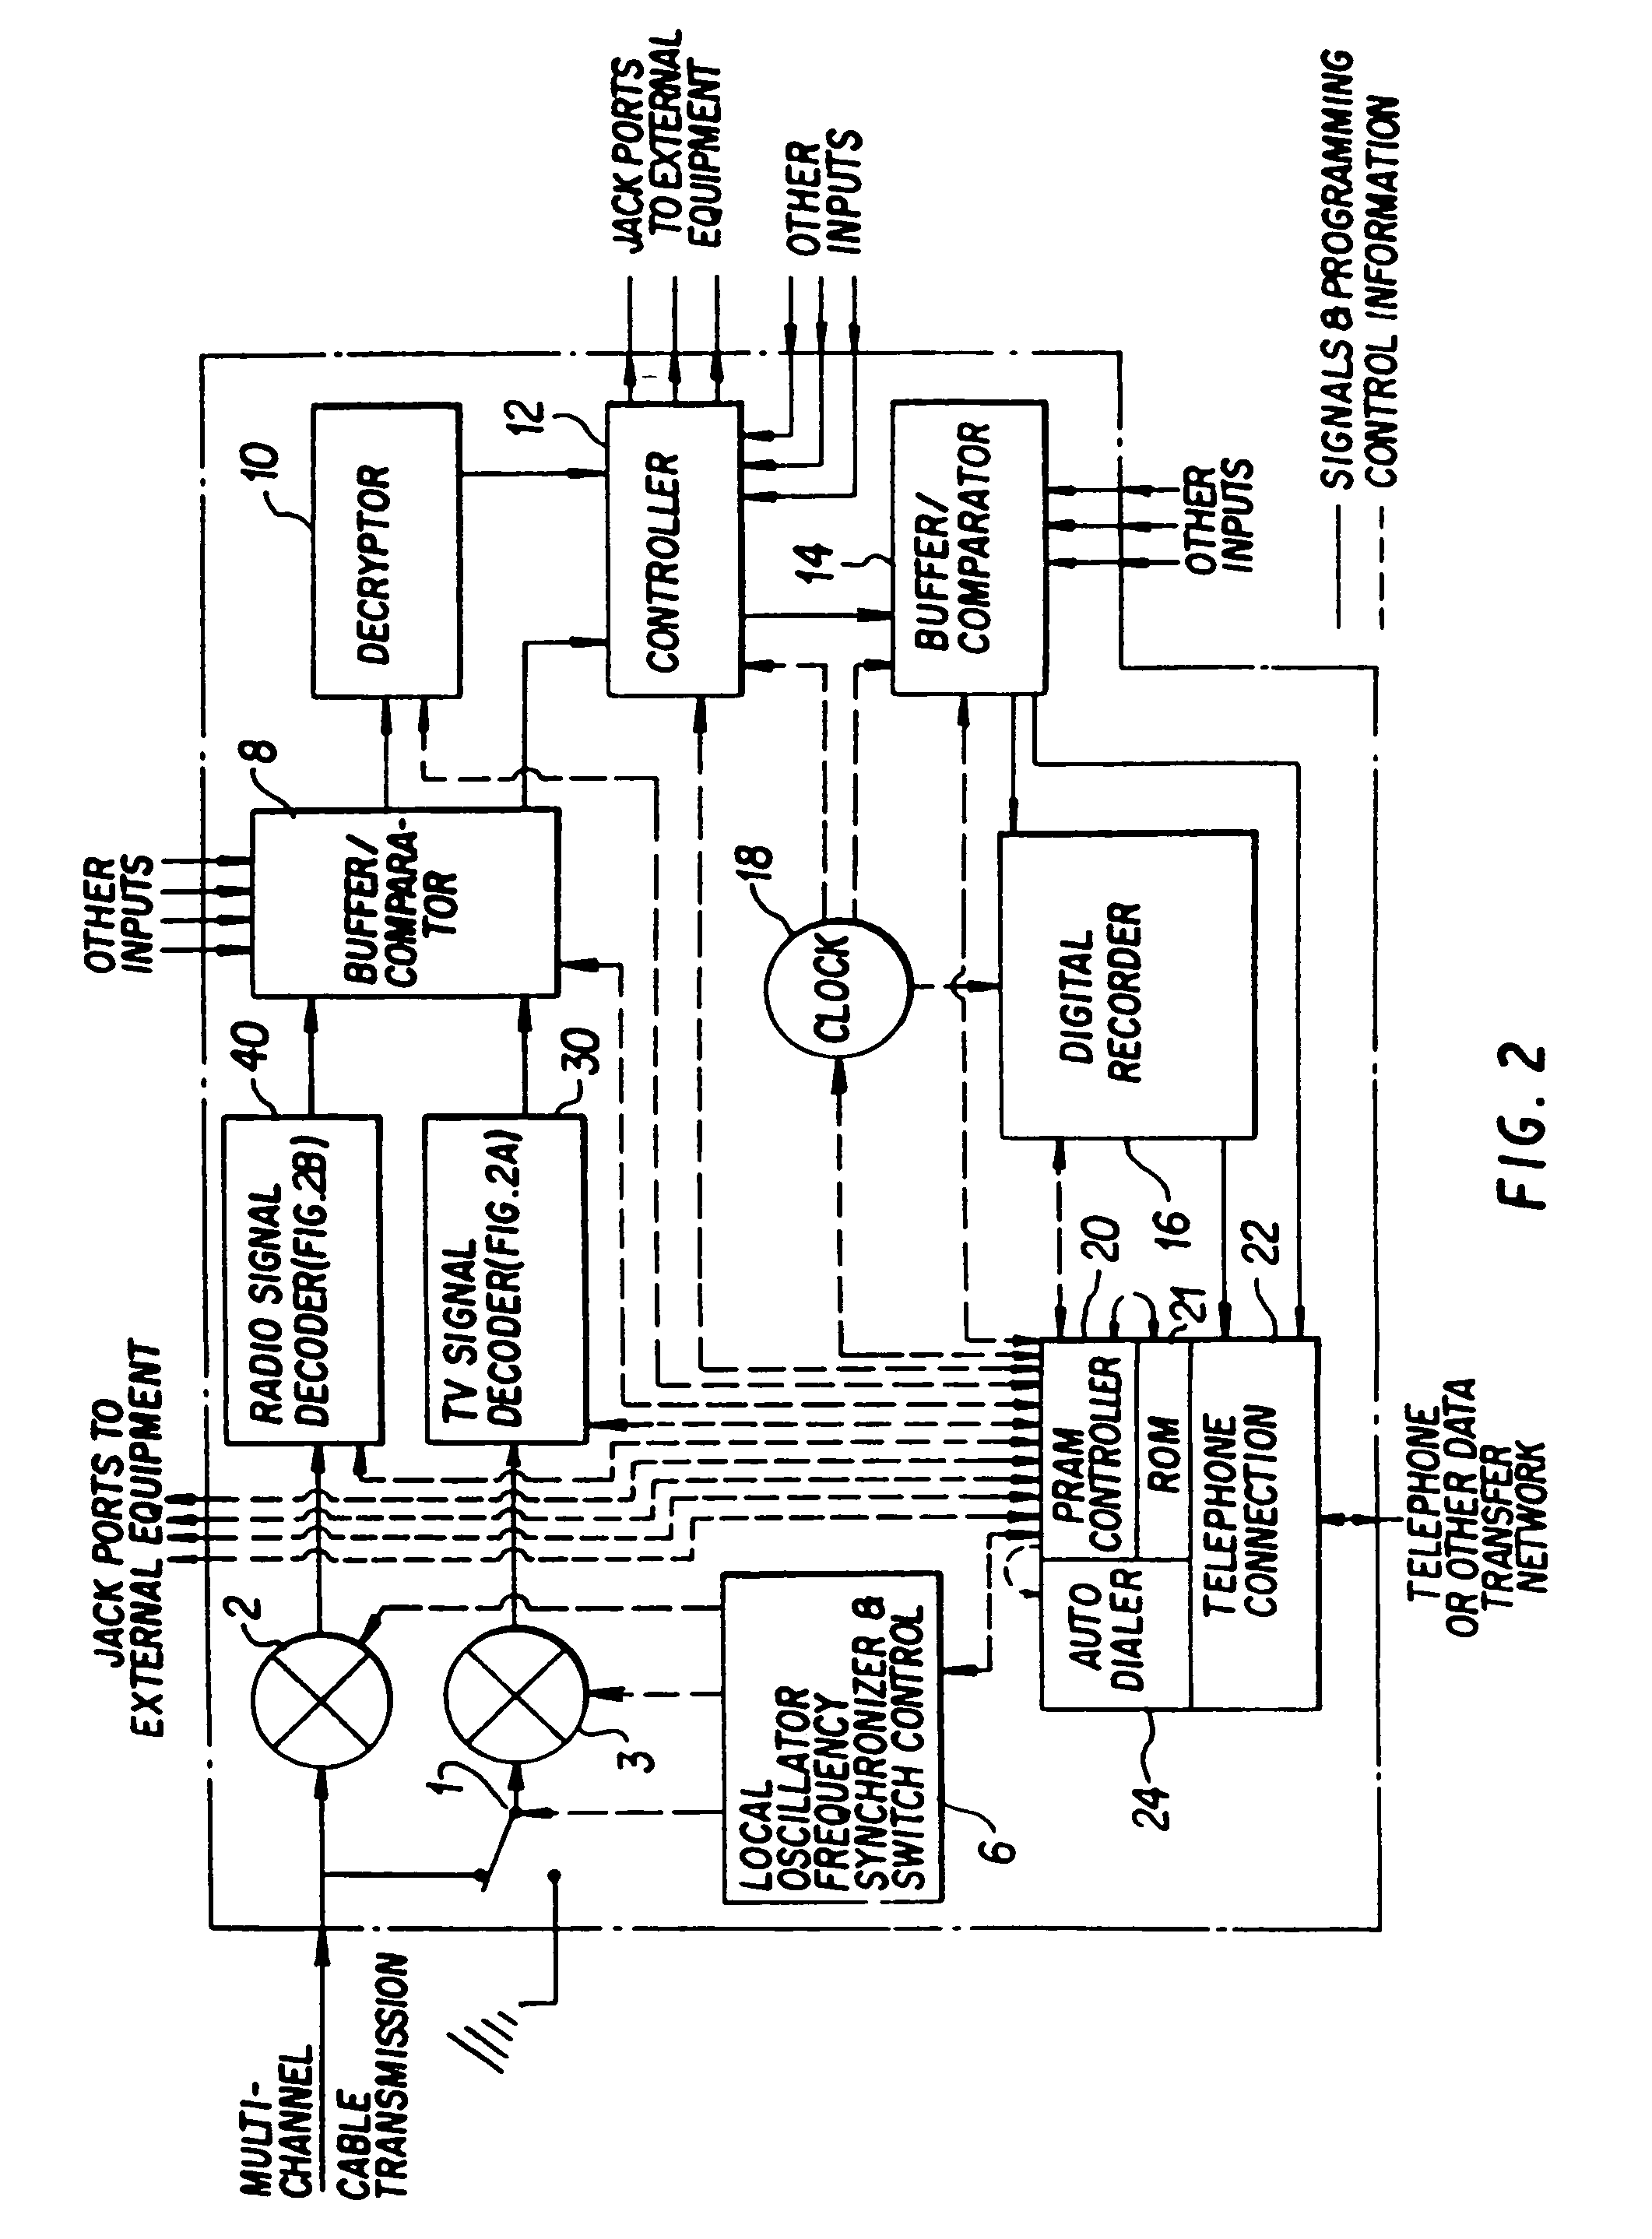 Us7865920b1 Signal Processing Apparatus And Methods Google Patents Engineer Club Pulse Position Modulation Ppm Using 555 Timers